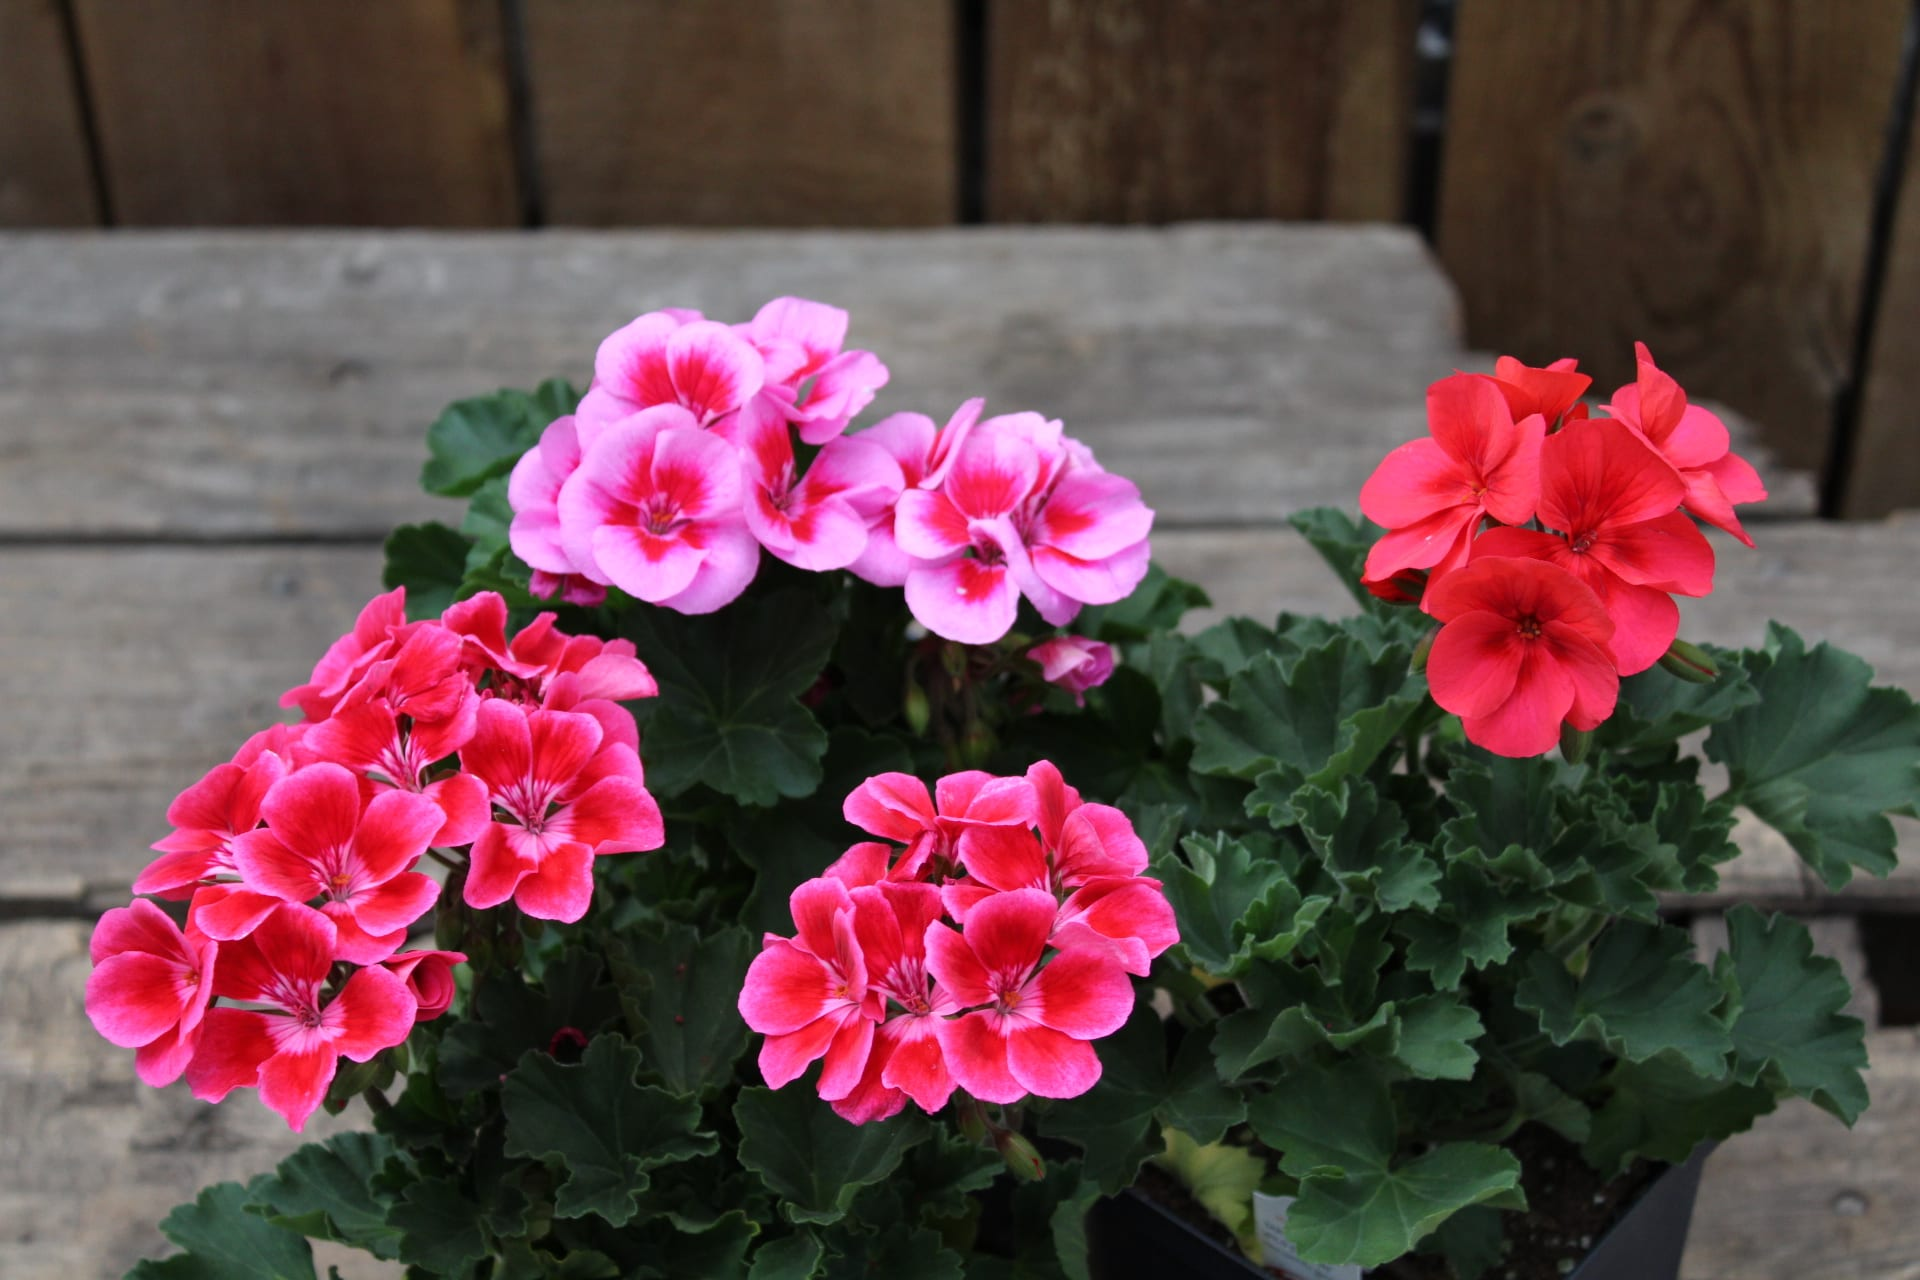 Geraniums at City Floral Greenhouse and Garden Center